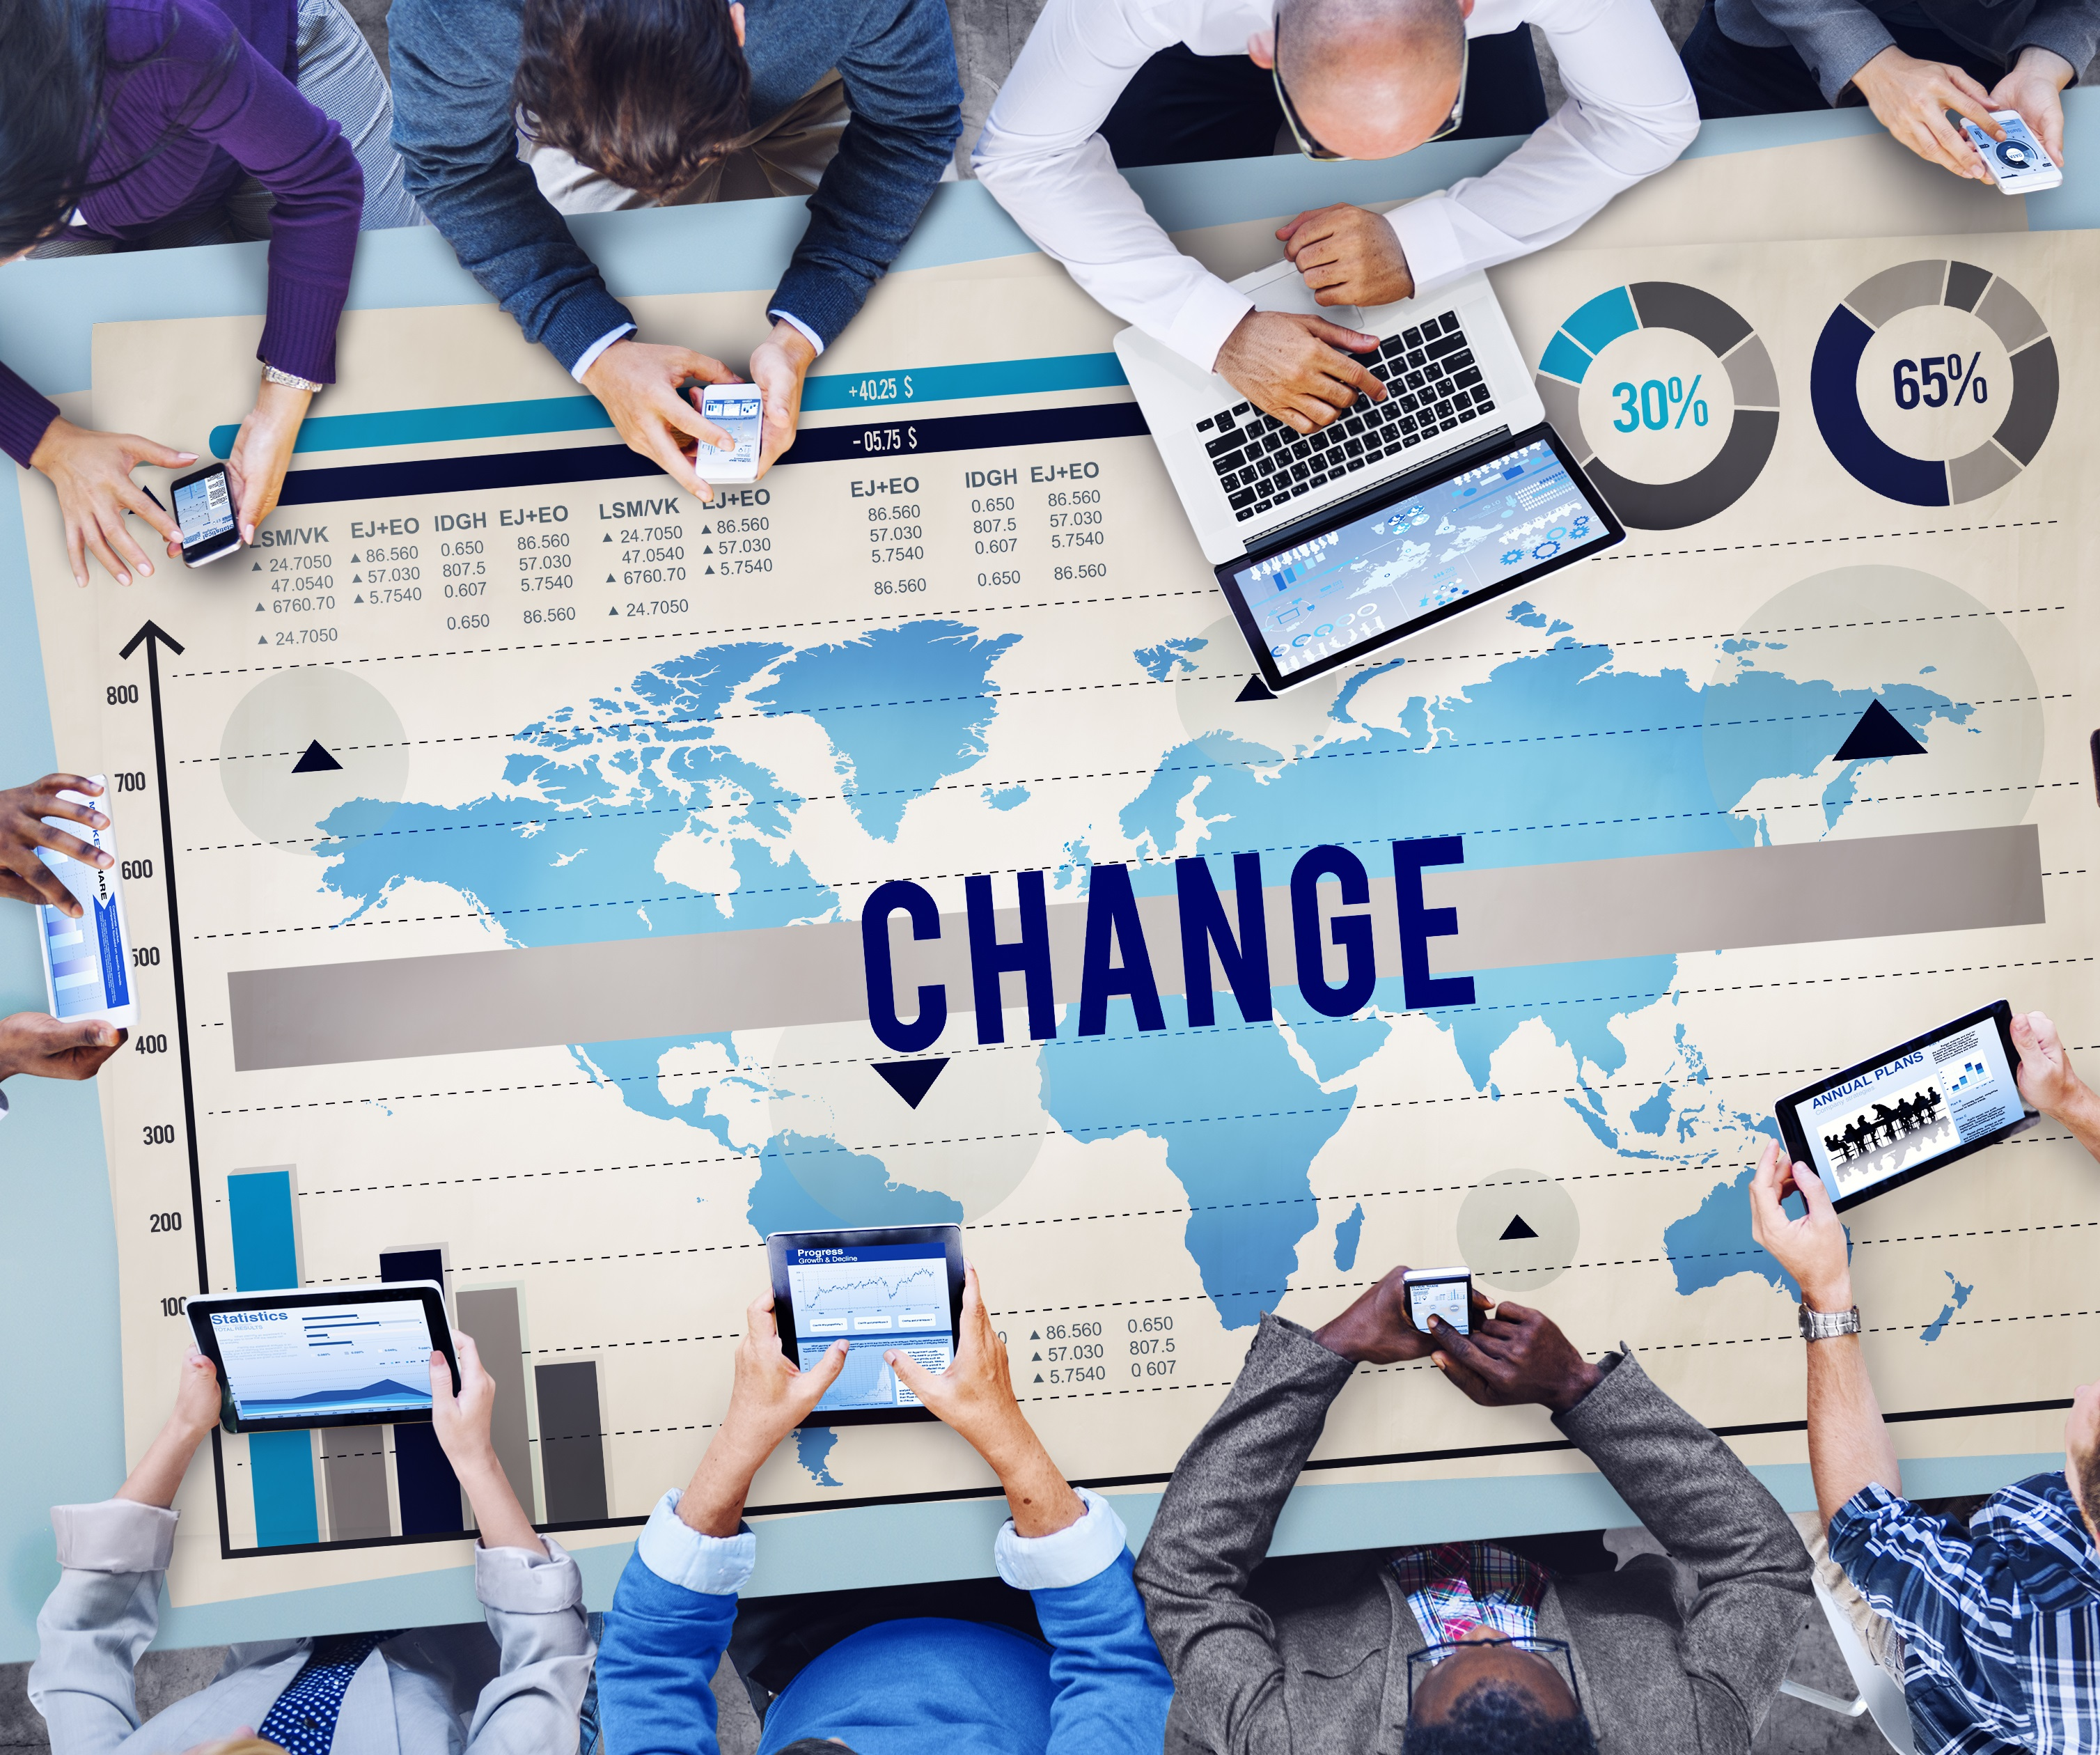 How to Lead Workplace Change